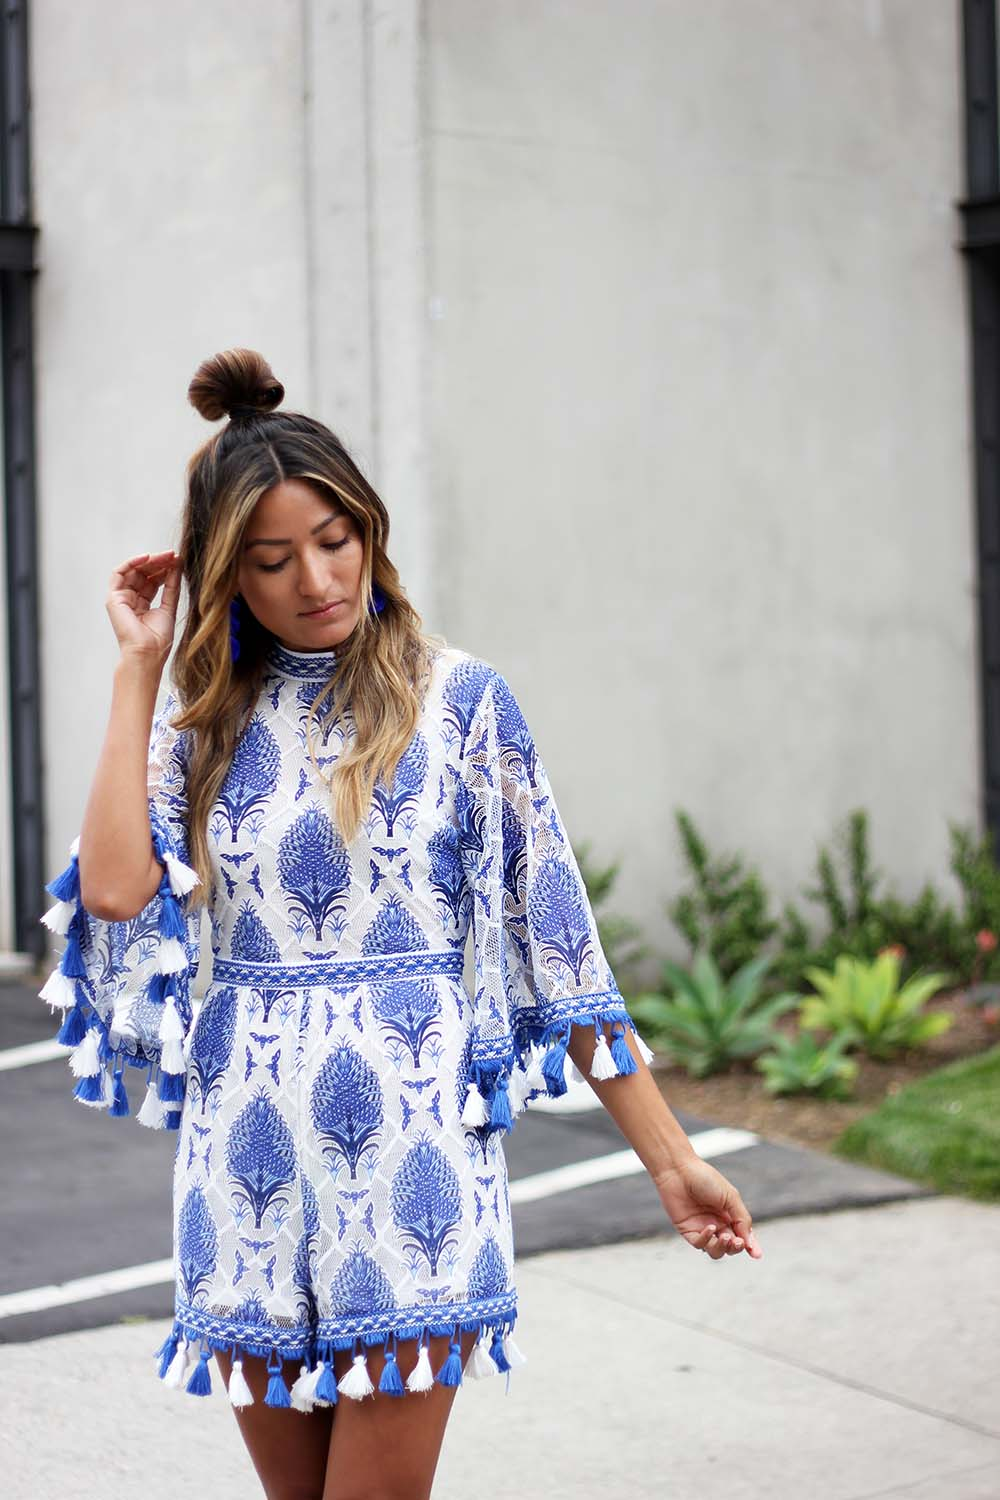 The Blue Romper of My Dreams , little mistress uk, blue printed romper, ethnic printed romper, tassel romper, melrodstyle, ootd, outfit, summer, trending, who what wear, bun life, top knot, pom pom earrings, blue on blue, latina blogger, la blogger, street style, blogger style,